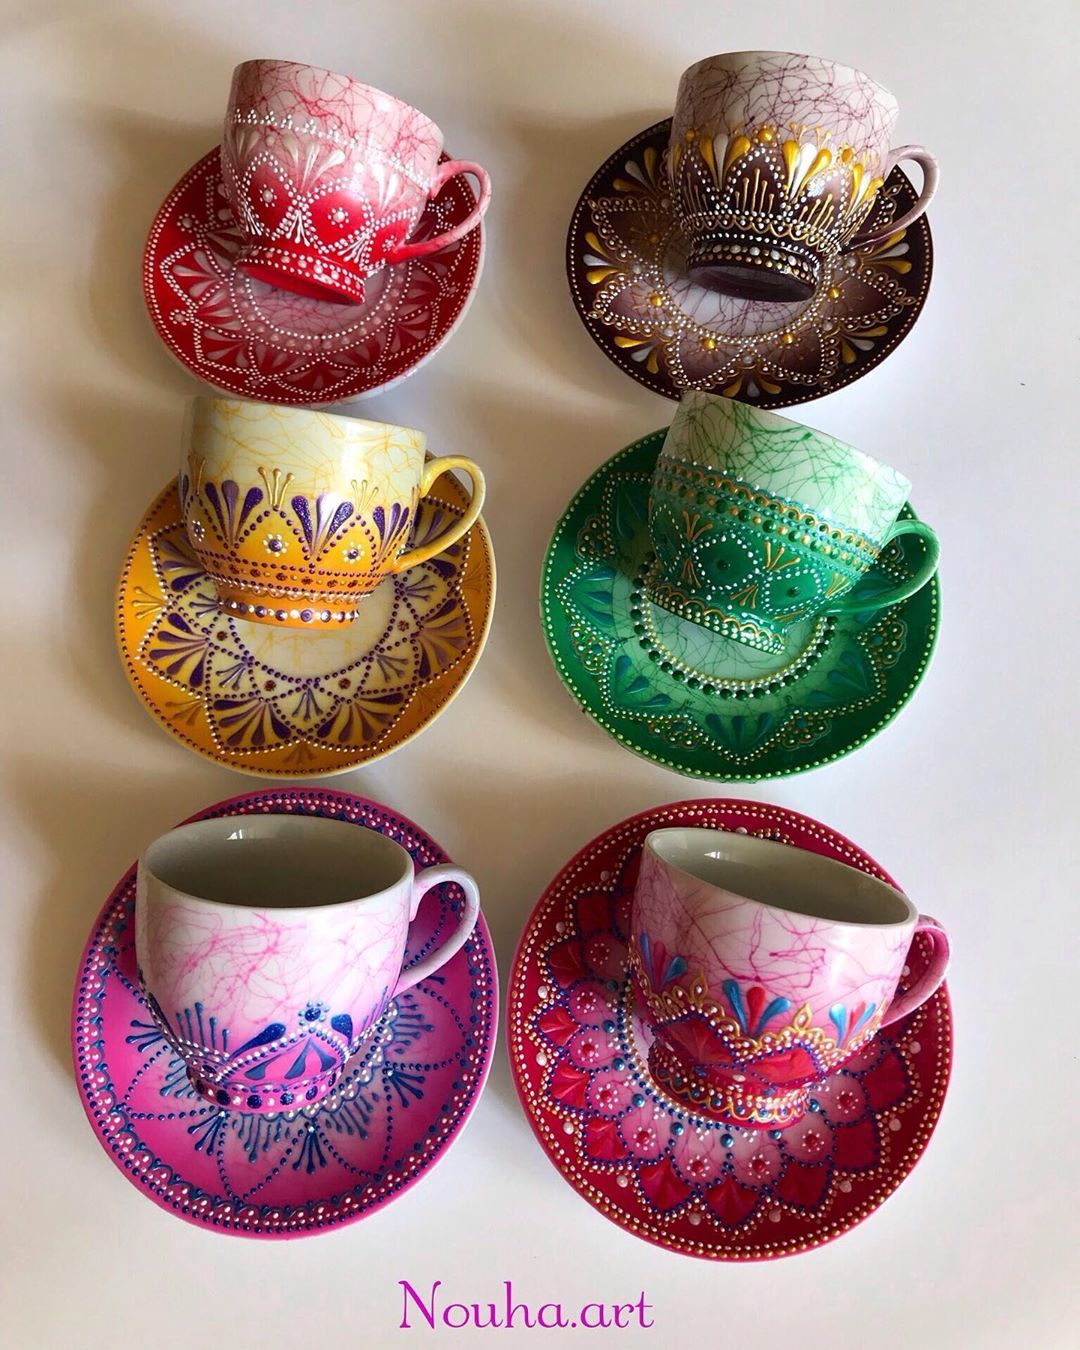 Nouha Moukalled On Instagram Wish You A Colourful Life Like These Cups Staysafe Ceramics Pottery Art Hand Painted Ceramics Painted Coffee Mugs